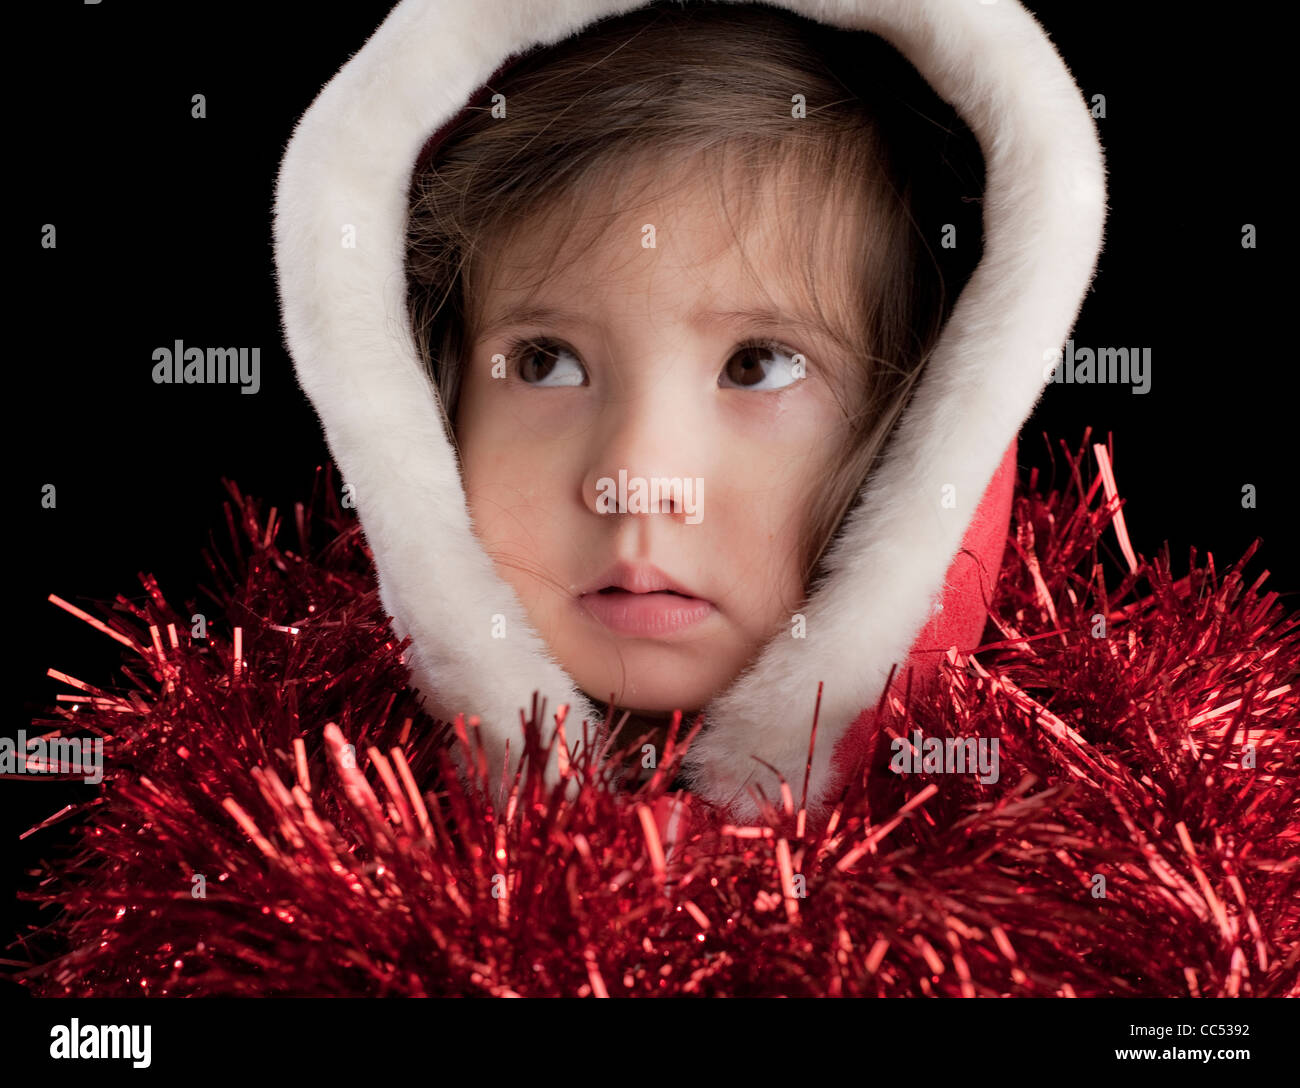 Girl wearing hood with tinsel - Stock Image